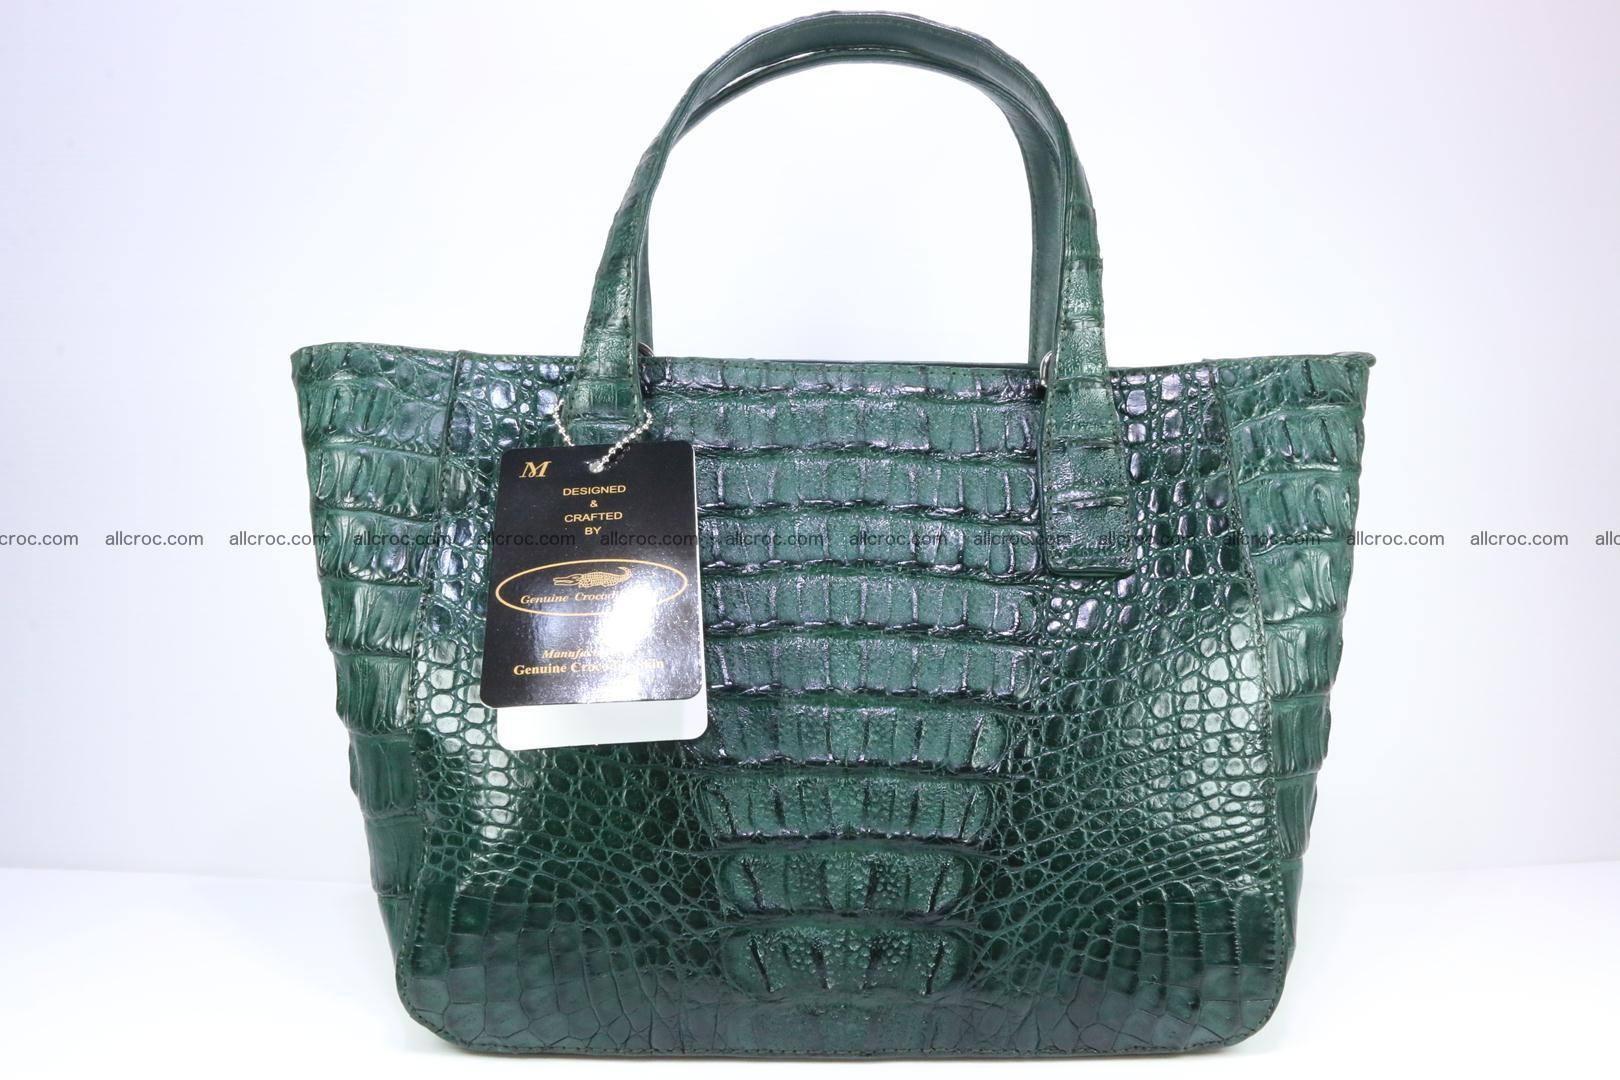 Genuine crocodile women's handbag 056 Foto 1